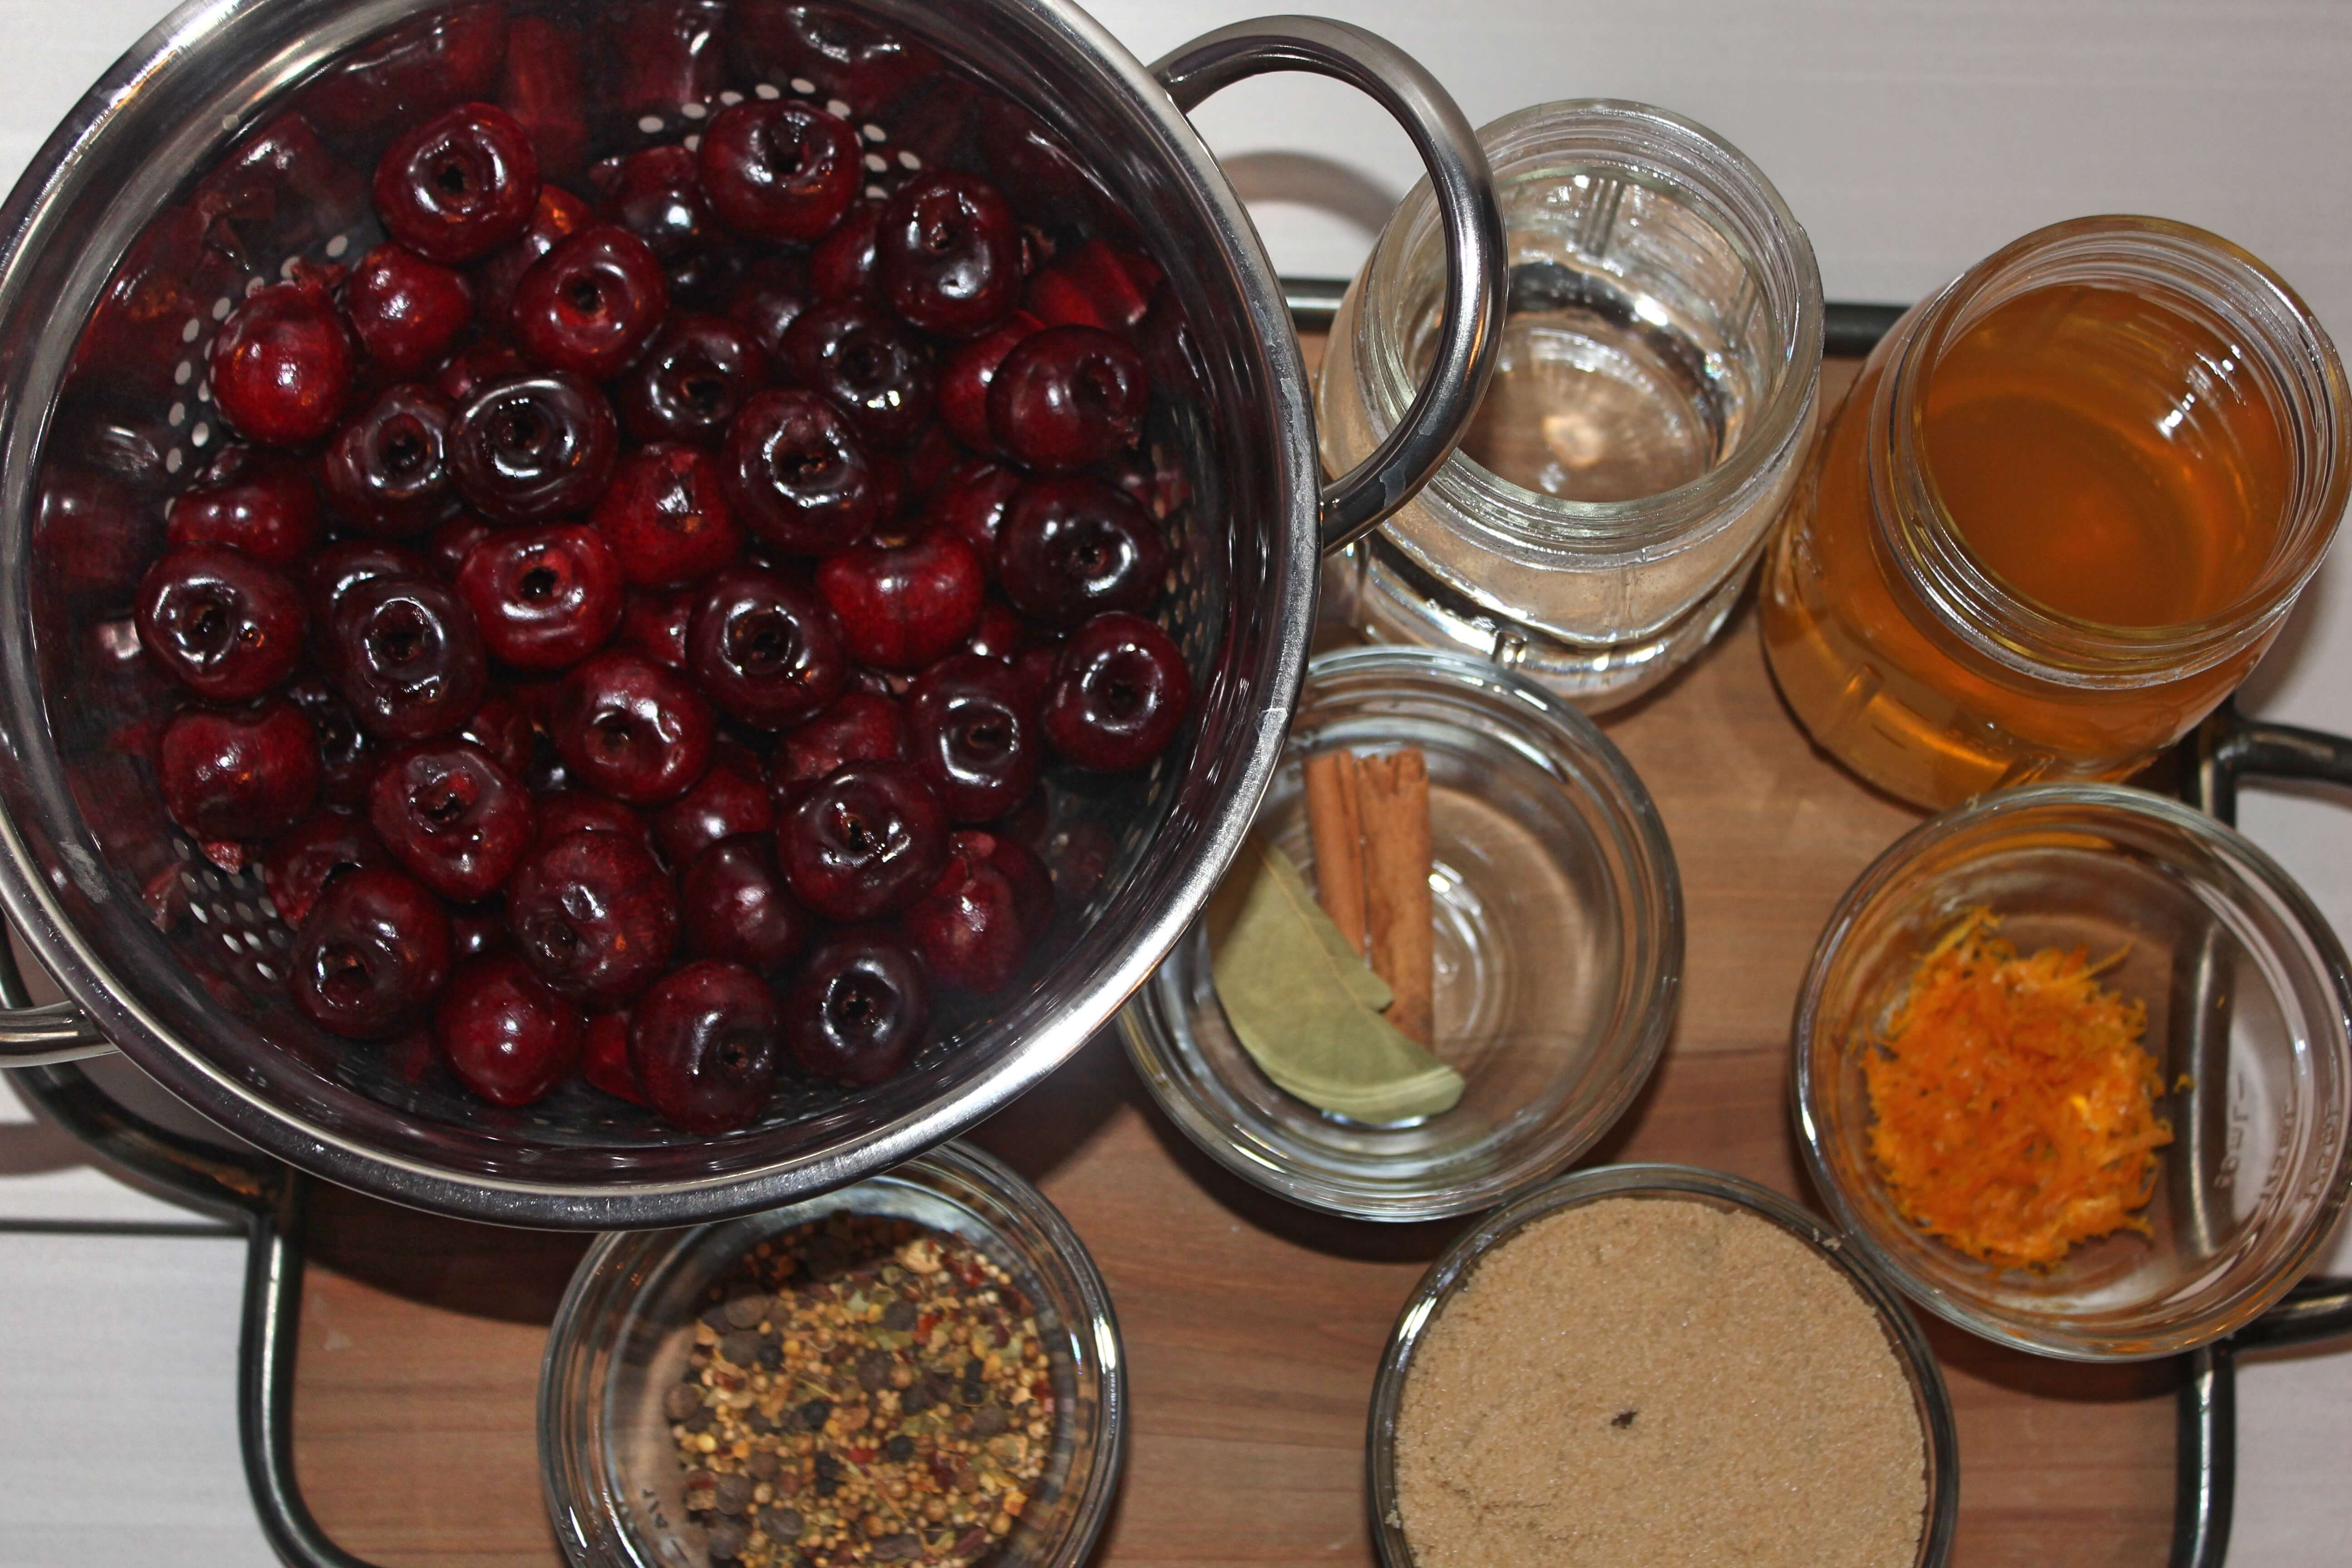 Ingredients for Pickled Cherries